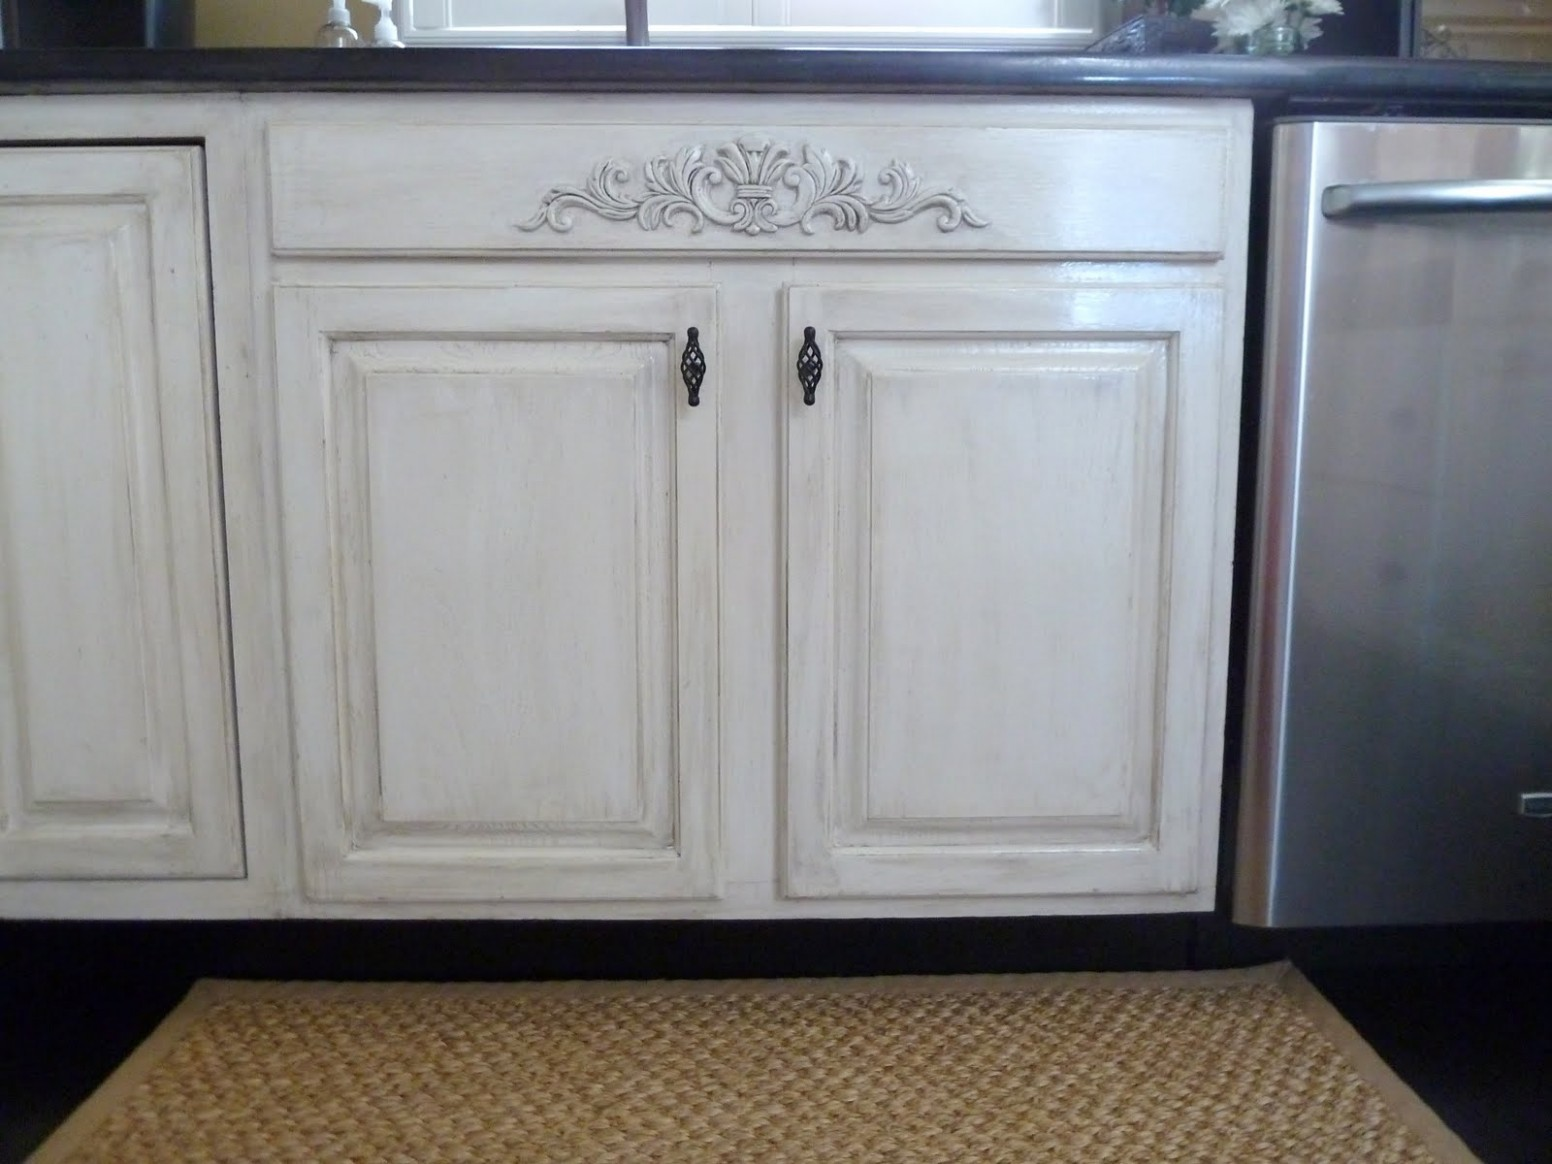 Distressed Kitchen Cabinets: How To Distress Your Kitchen Cabinets - Distressed Kitchen Cabinets Pictures